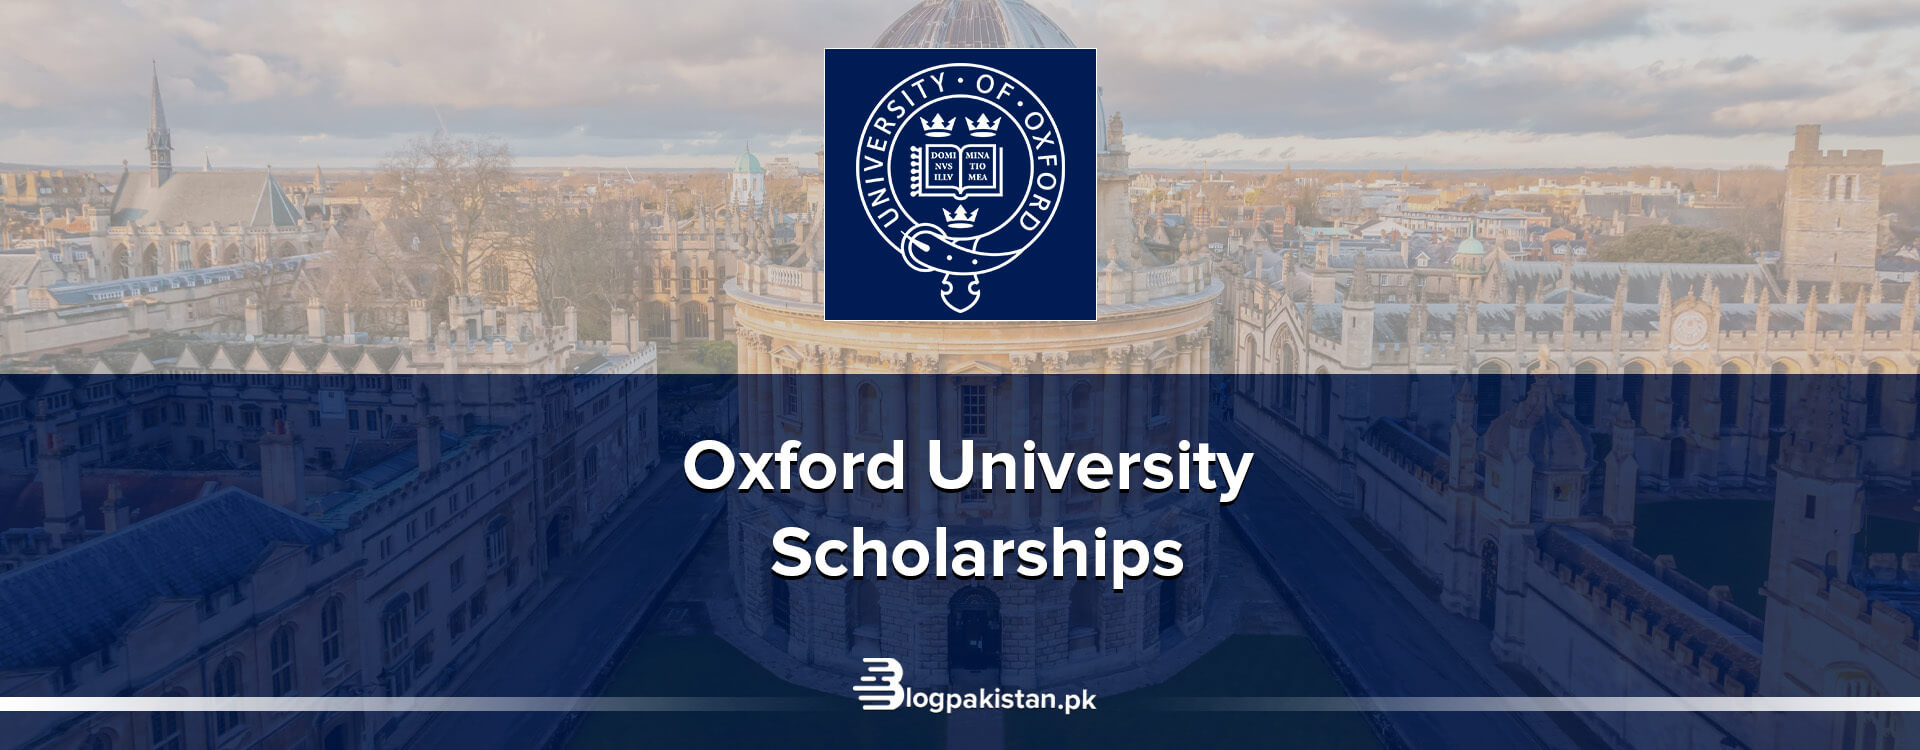 oxford university scholarships and fellowships for Pakistan